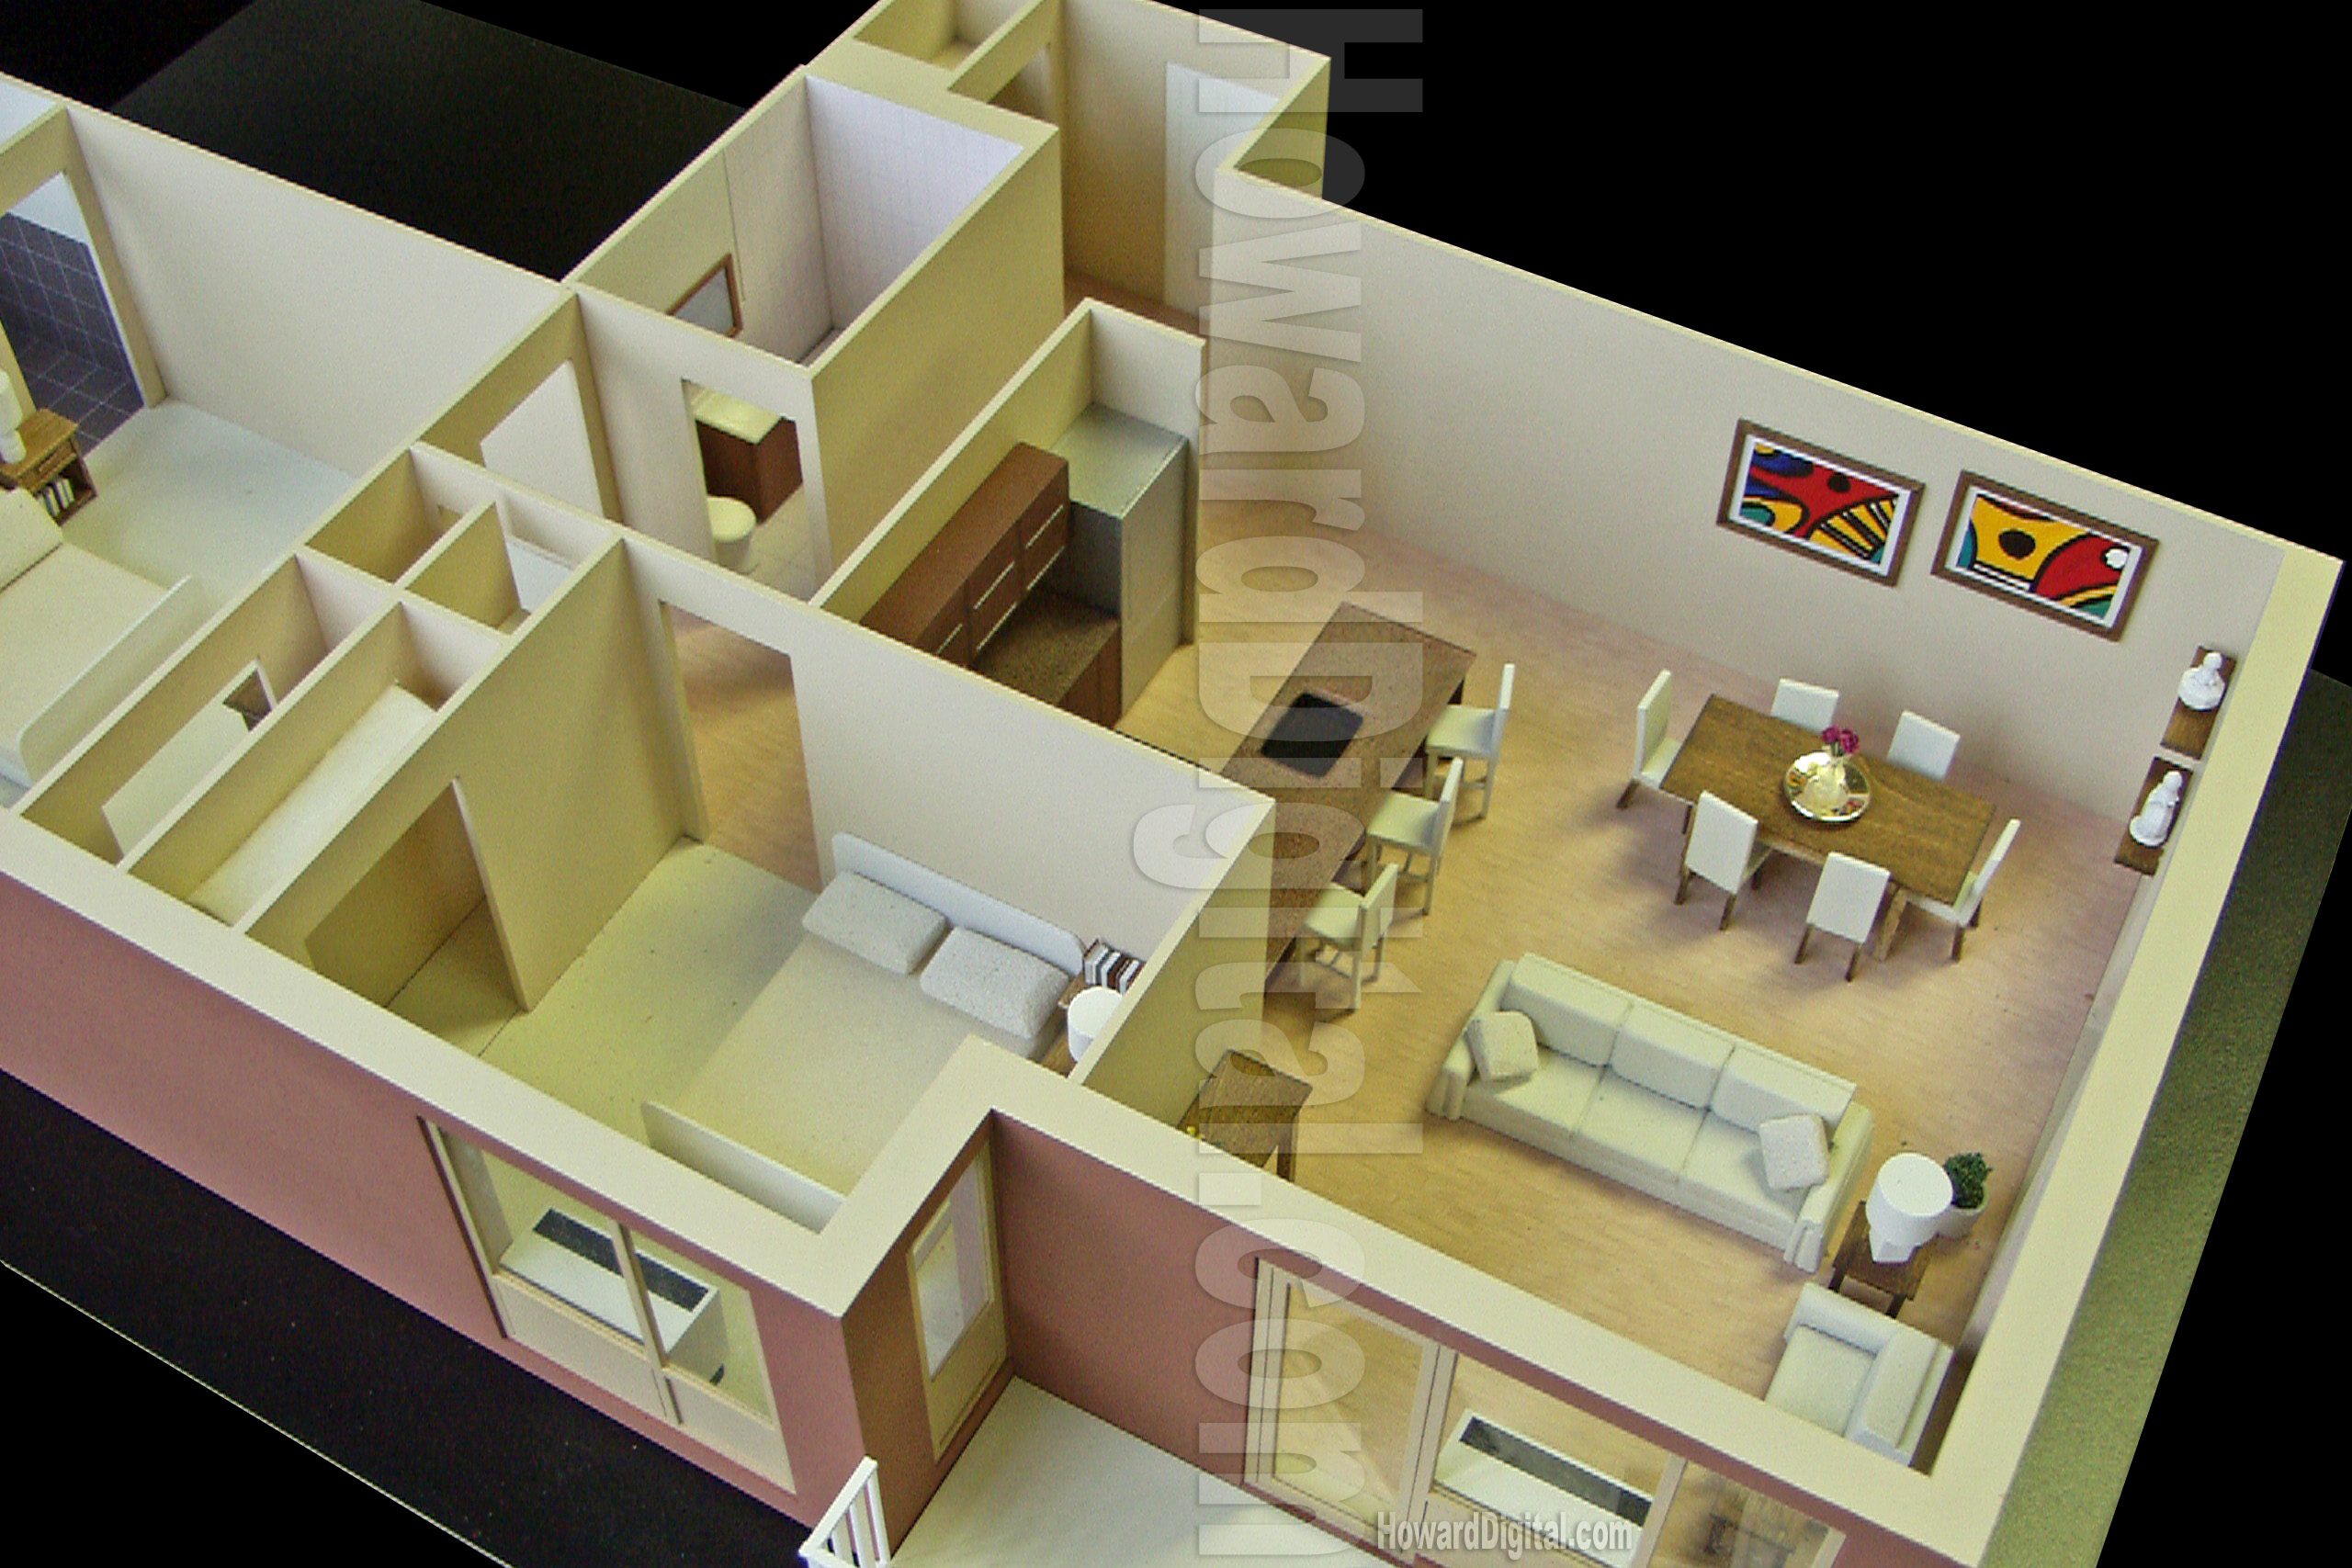 House interior design models photos for Architecture interior design